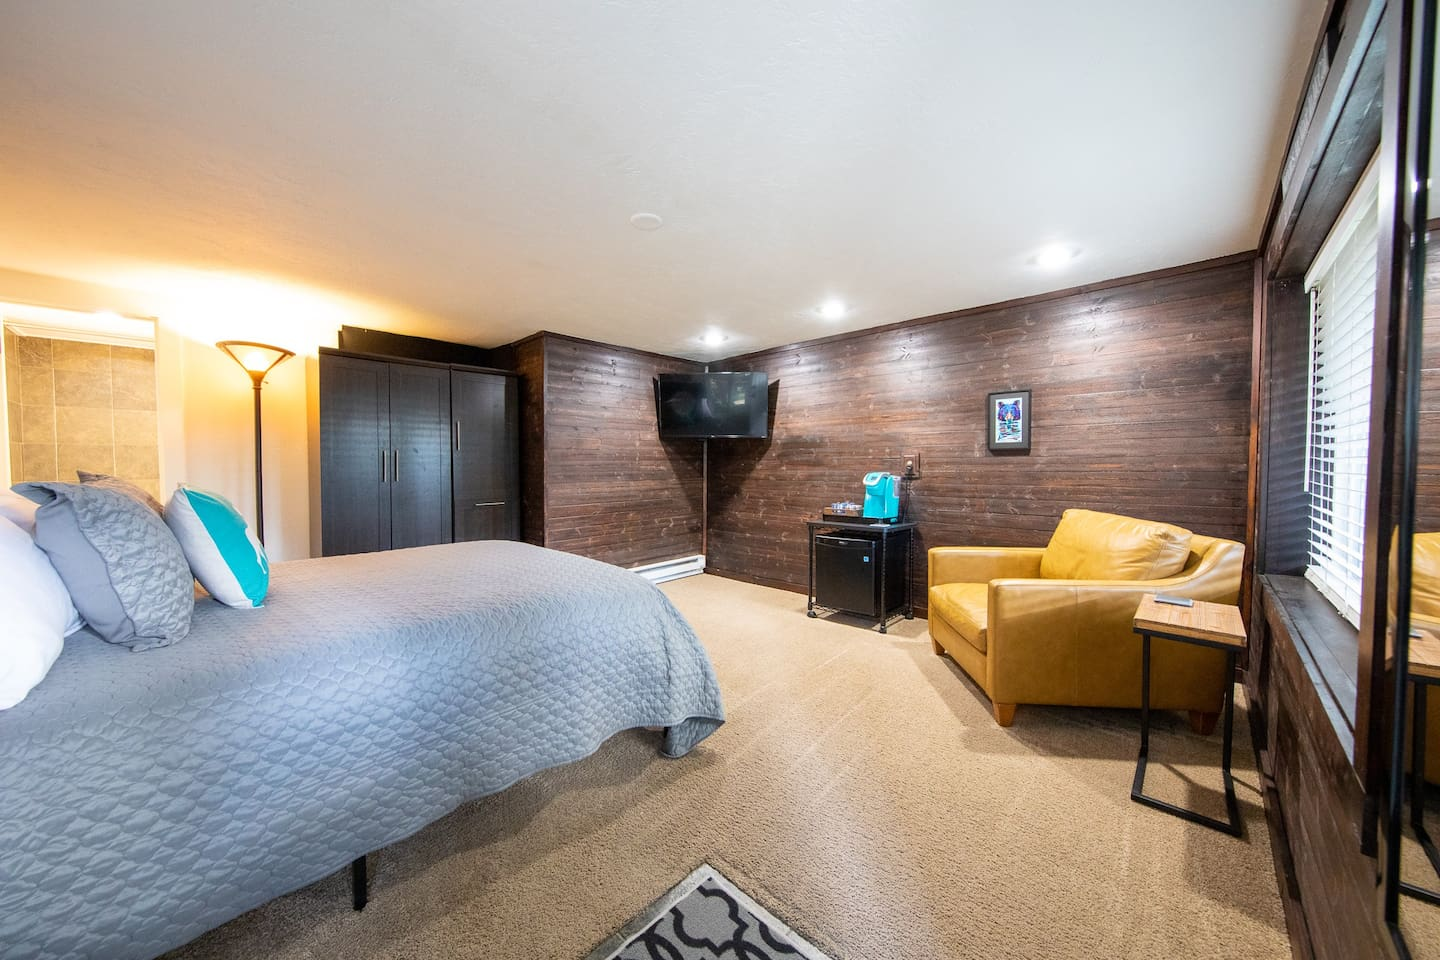 Guest suite with private entrance, private suite, and private bath. First floor walk-in basement suite.